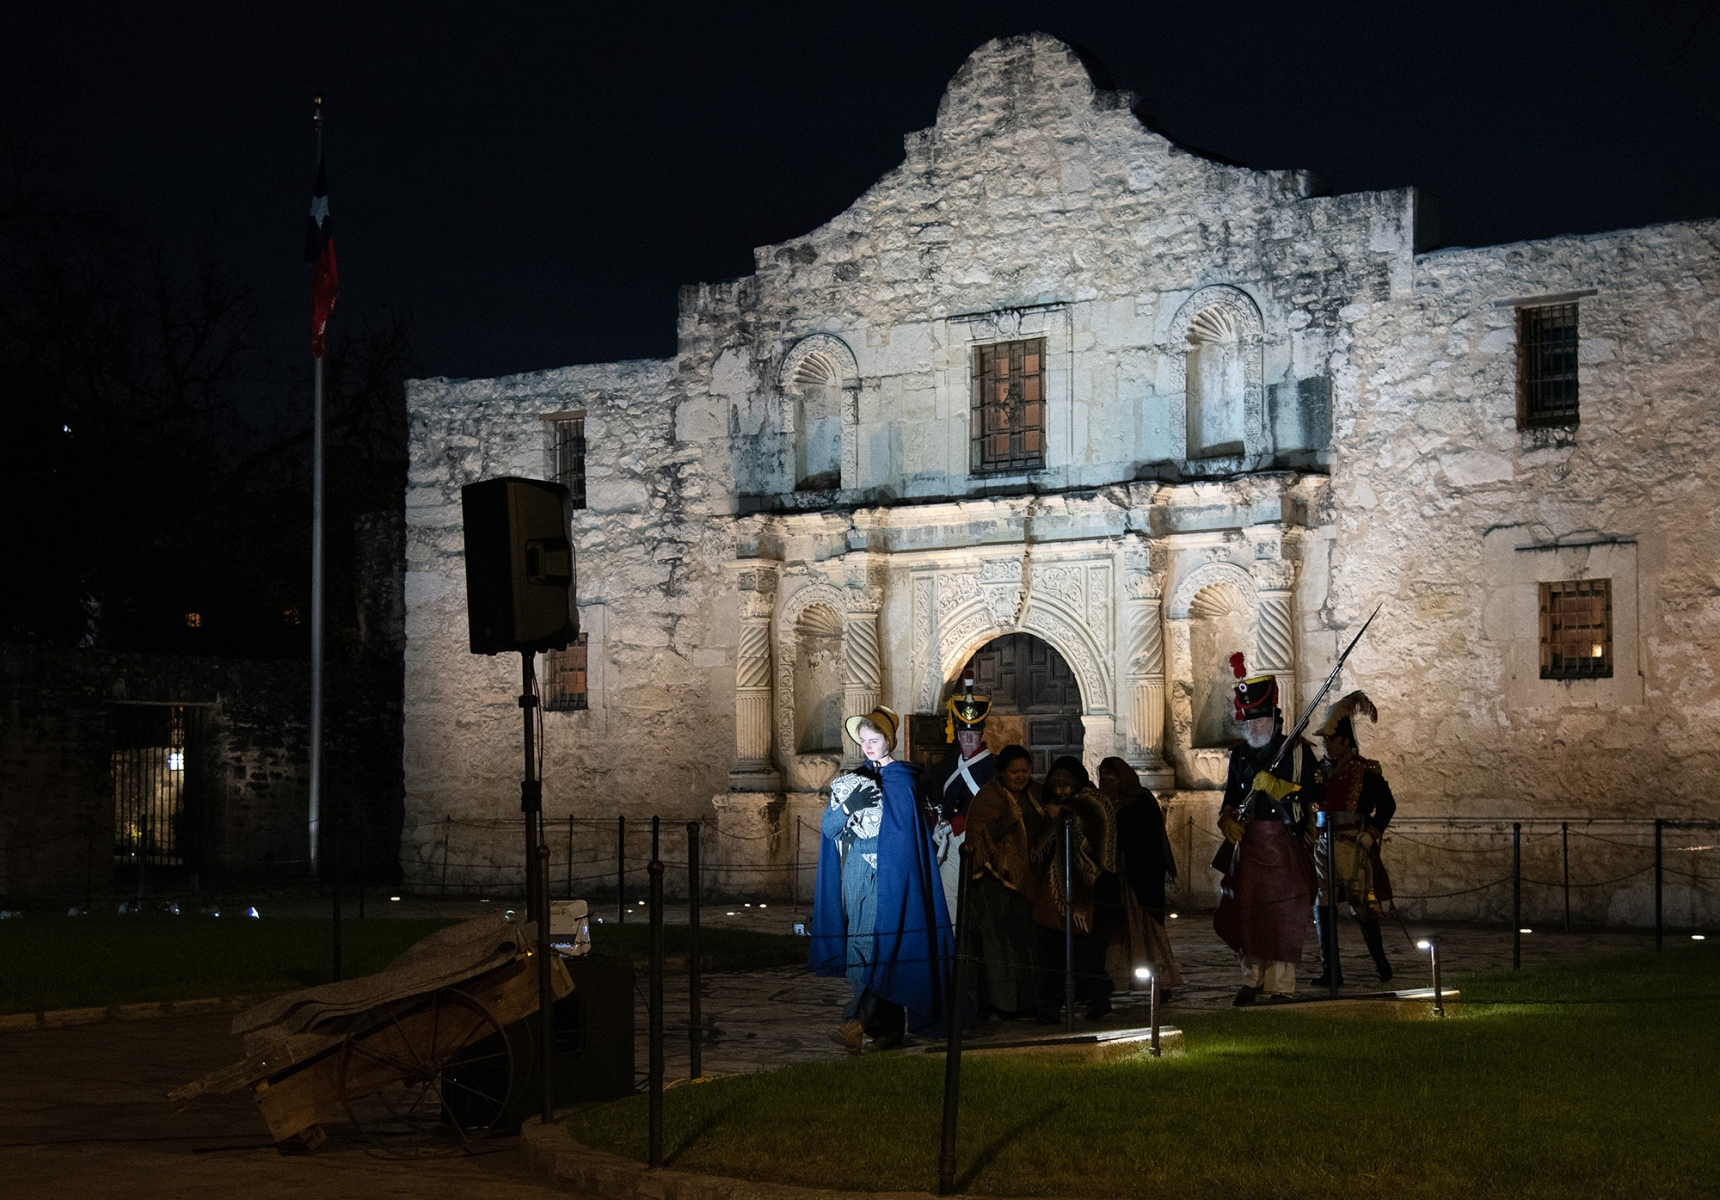 Katie Dillard, portraying Susanna Dickinson, is escorted out of the Alamo by Gen. Santa Anna's men during the Dawn at the Alamo ceremony March 26, 2019, at Alamo Plaza.